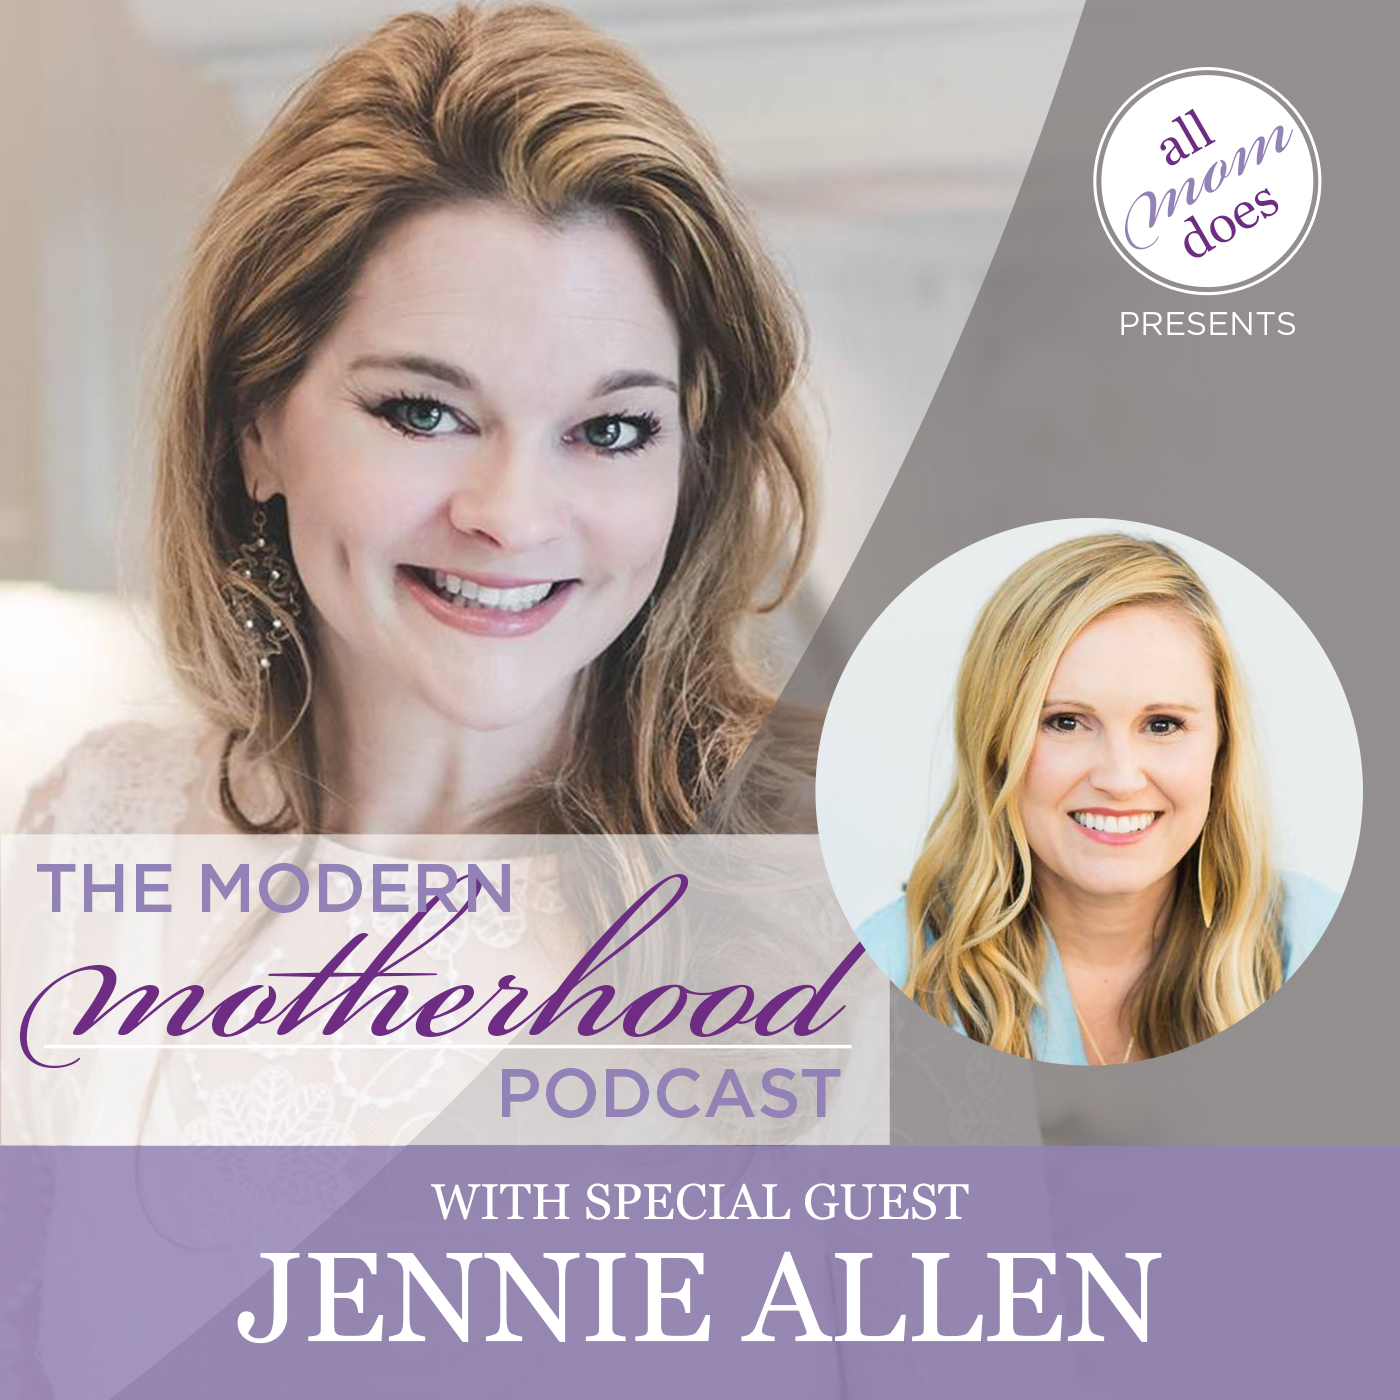 Modern Motherhood Podcast #2: Jennie Allen